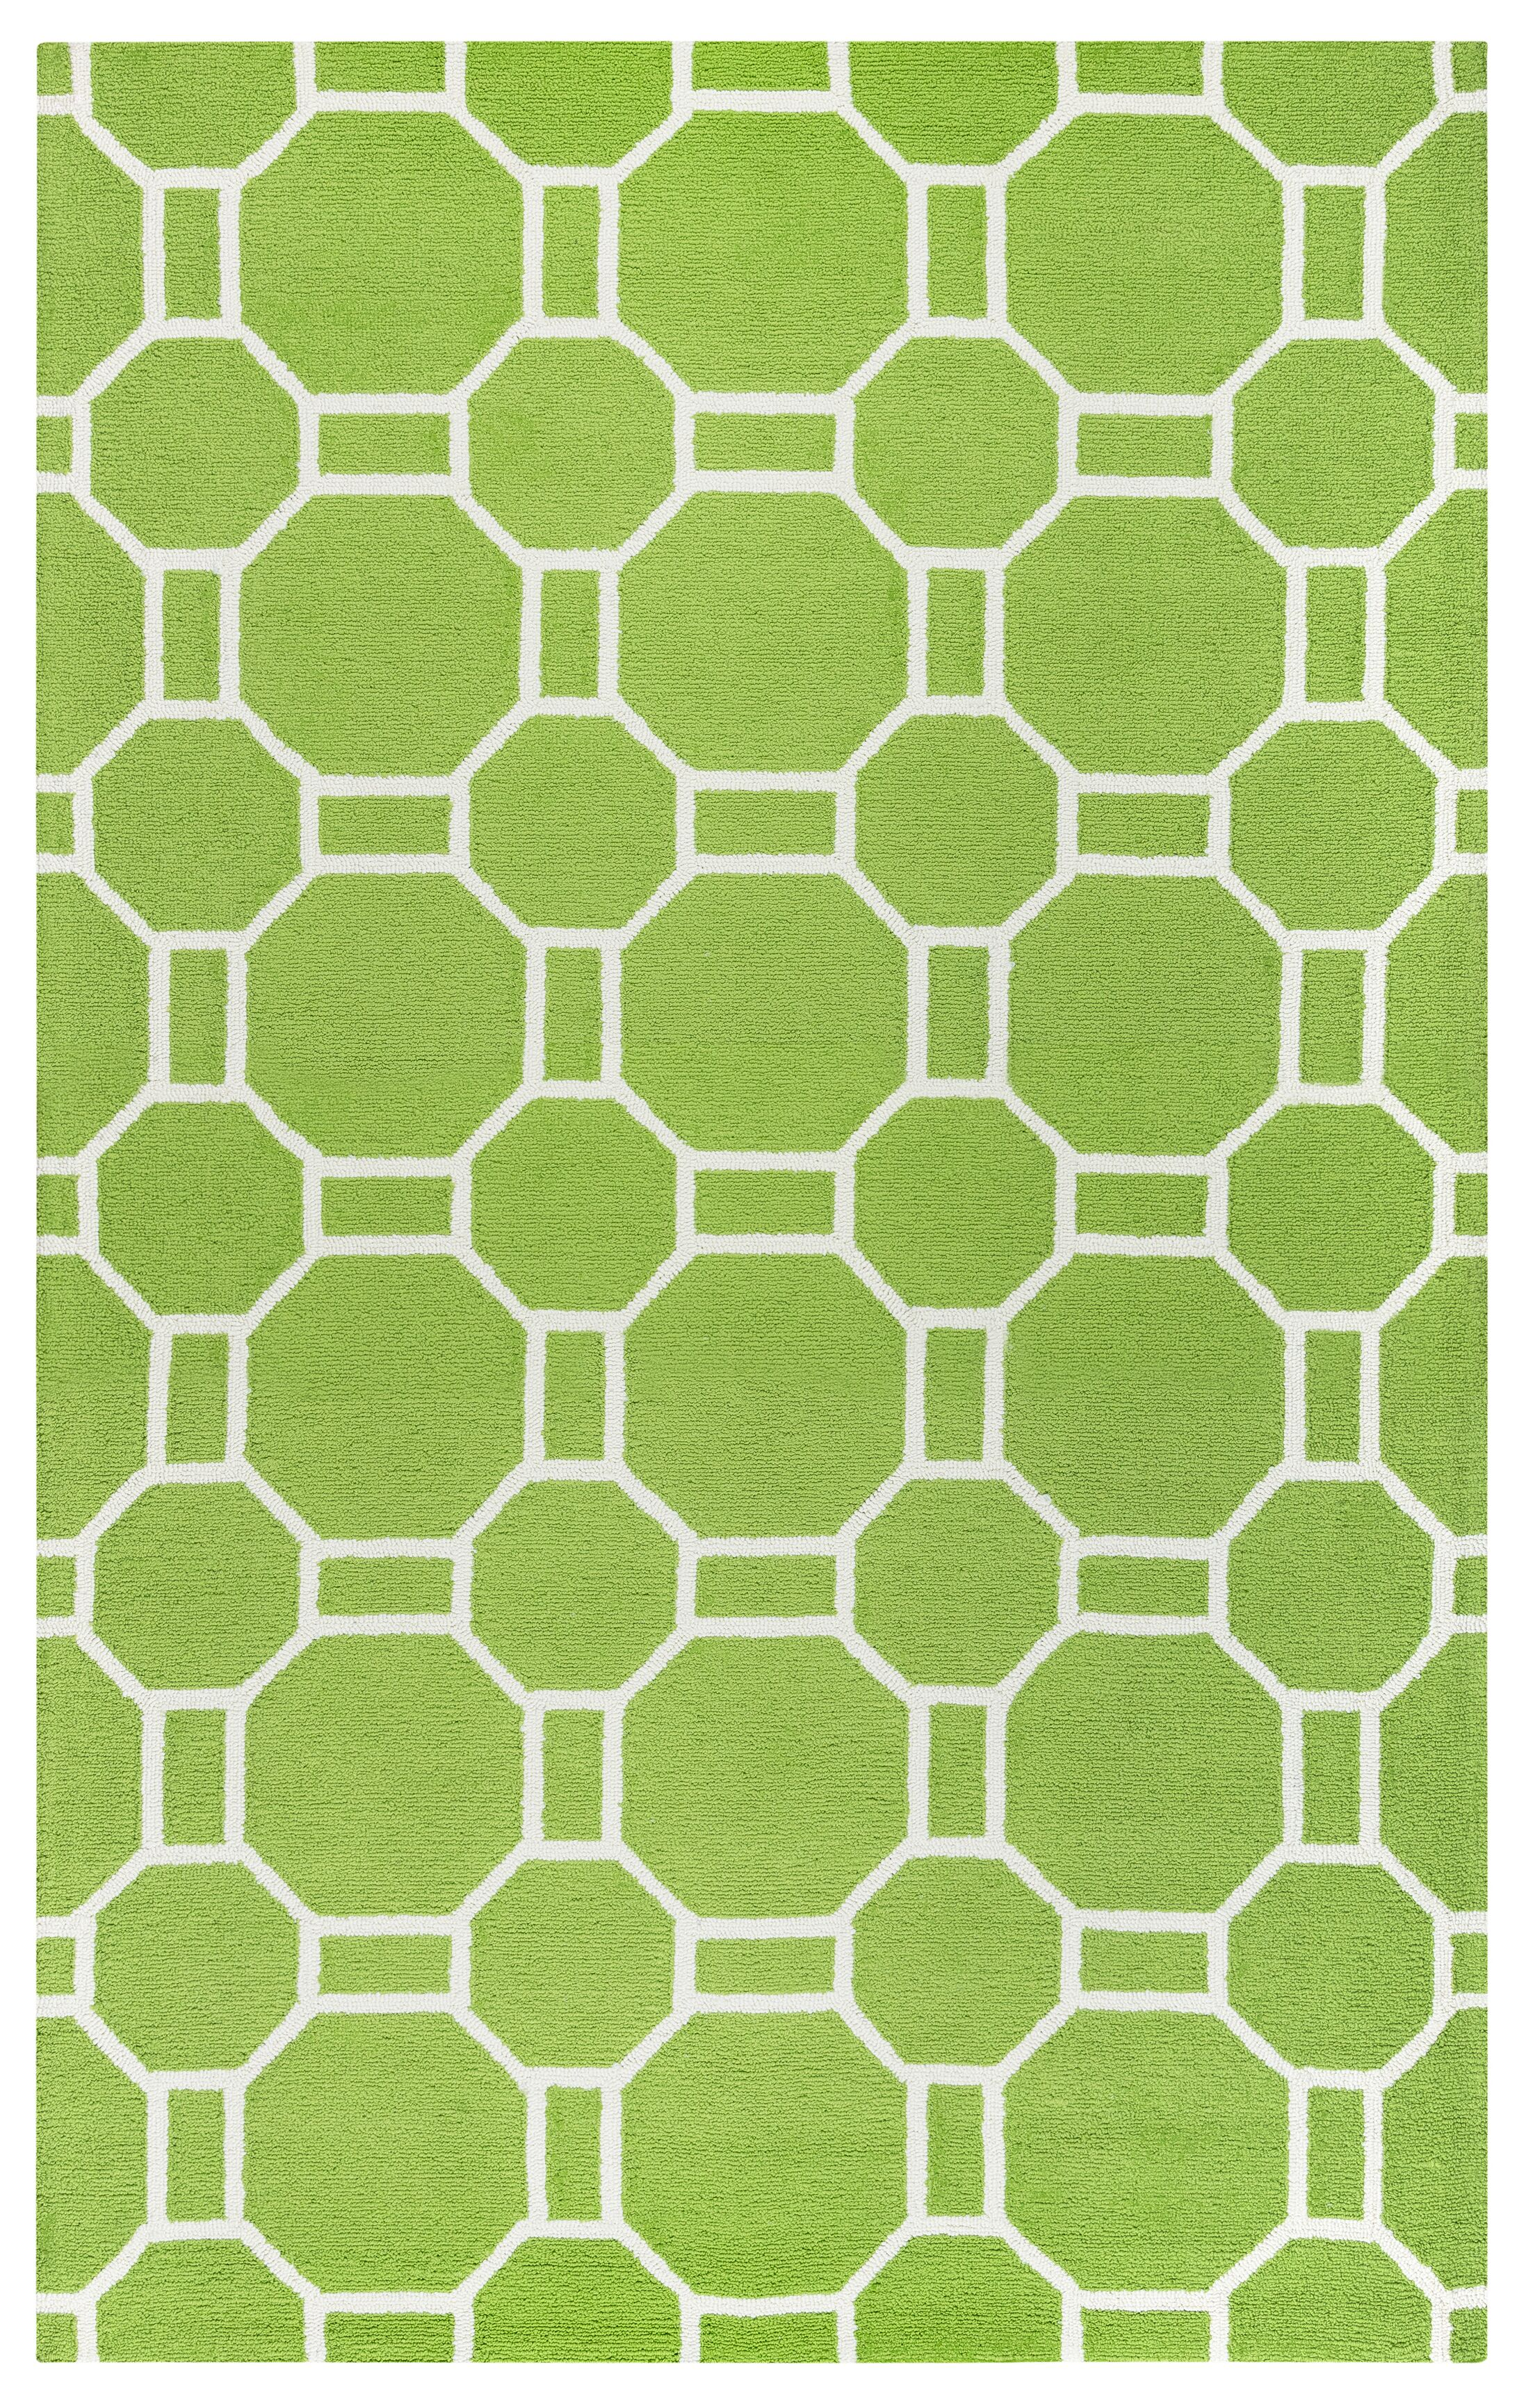 Evangeline Hand-Tufted Lime Indoor/Outdoor Area Rug Size: Rectangle 7'6